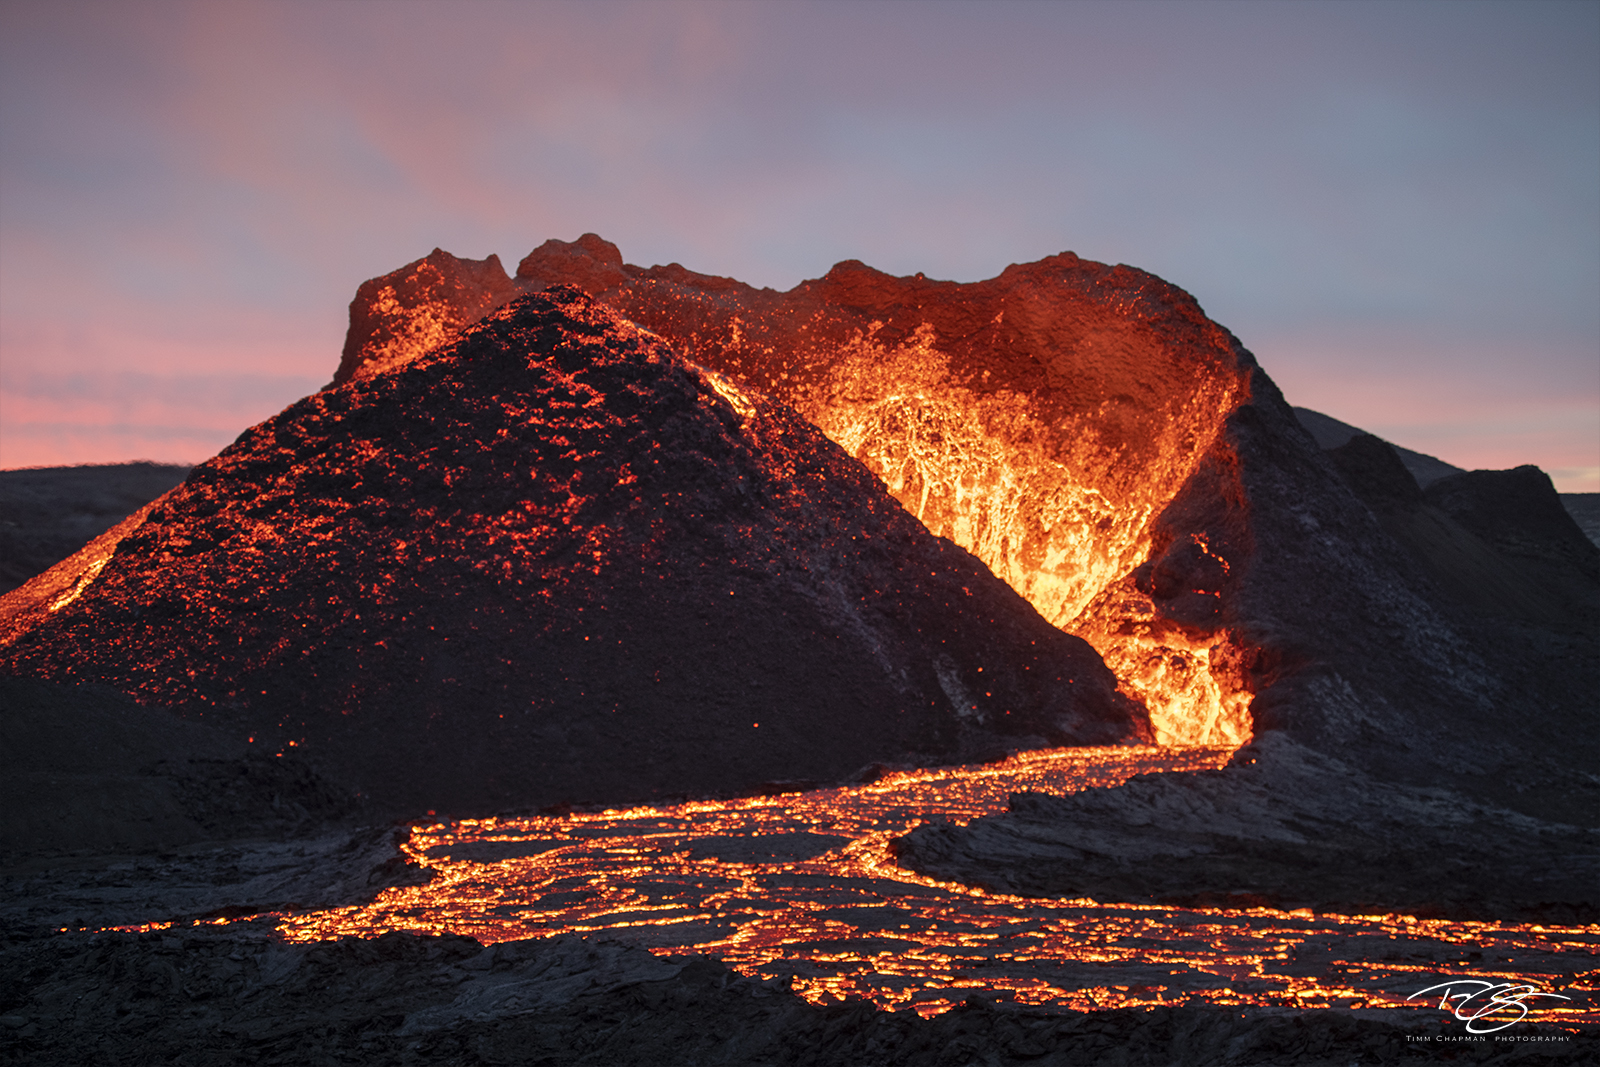 A volcano glows with a coat of fresh lava shortly after an eruption